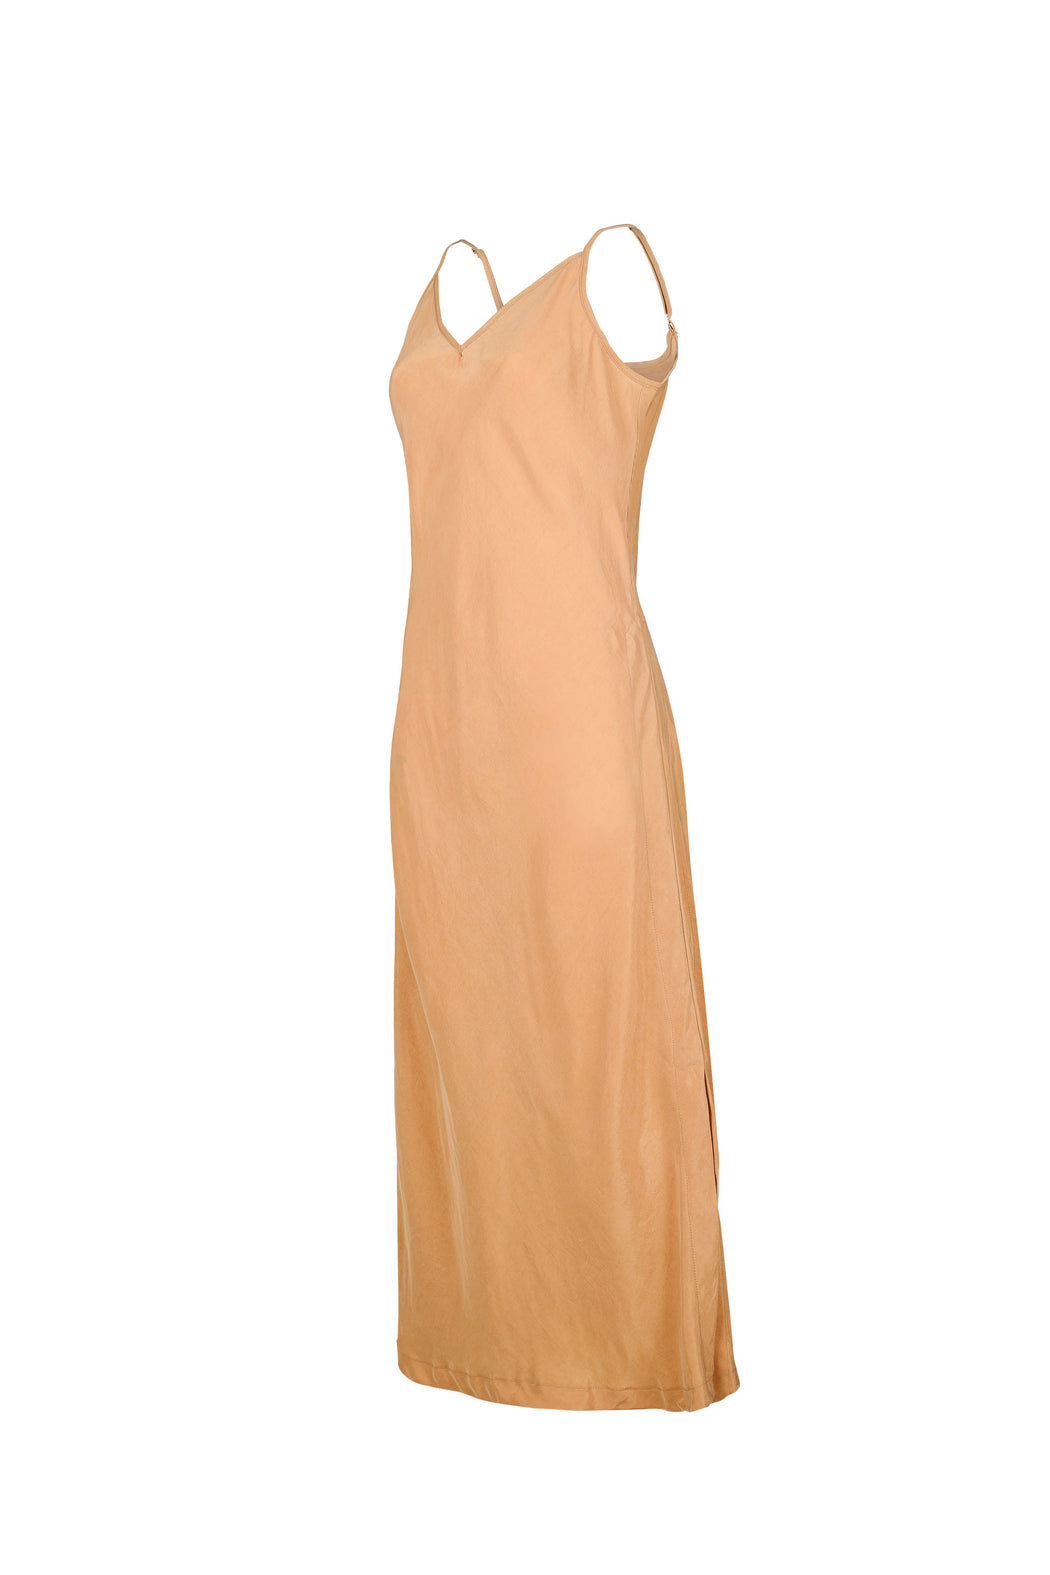 Women Cupro Sleeveless Dress, Side, Gold